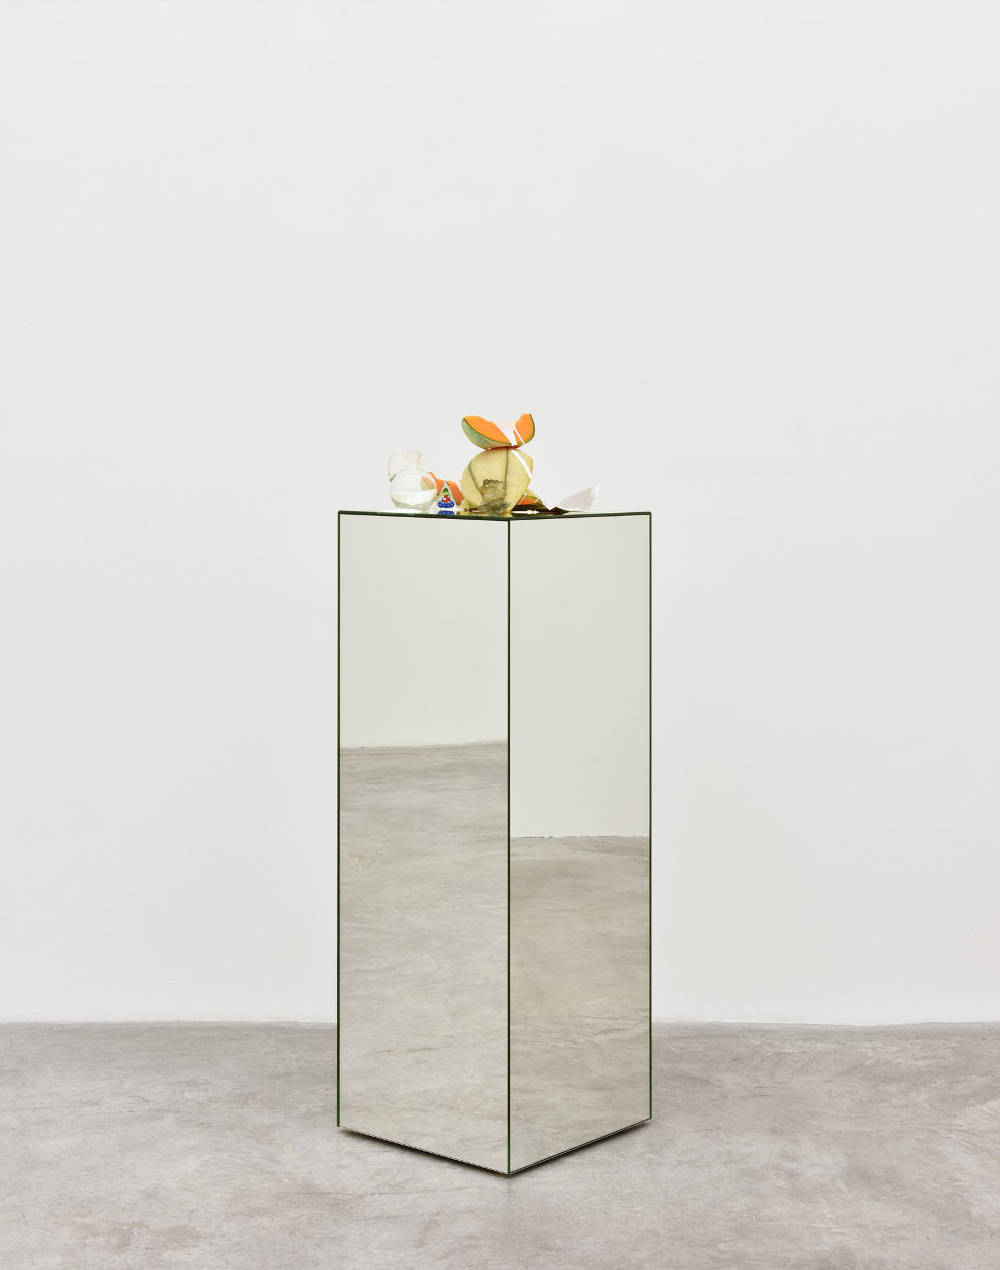 Chloe WISE, Vision of soft skin, Tabasco sauce, 2017. Oil paint, urethane, foil wrapper, glass on miror plinth 131 x 40,5 x 40 cm 51 5/8 x 16 x 15 3/4 inches © Chloe Wise - Photo: Rebecca Fanuele. Courtesy of the Artist and Almine Rech Gallery